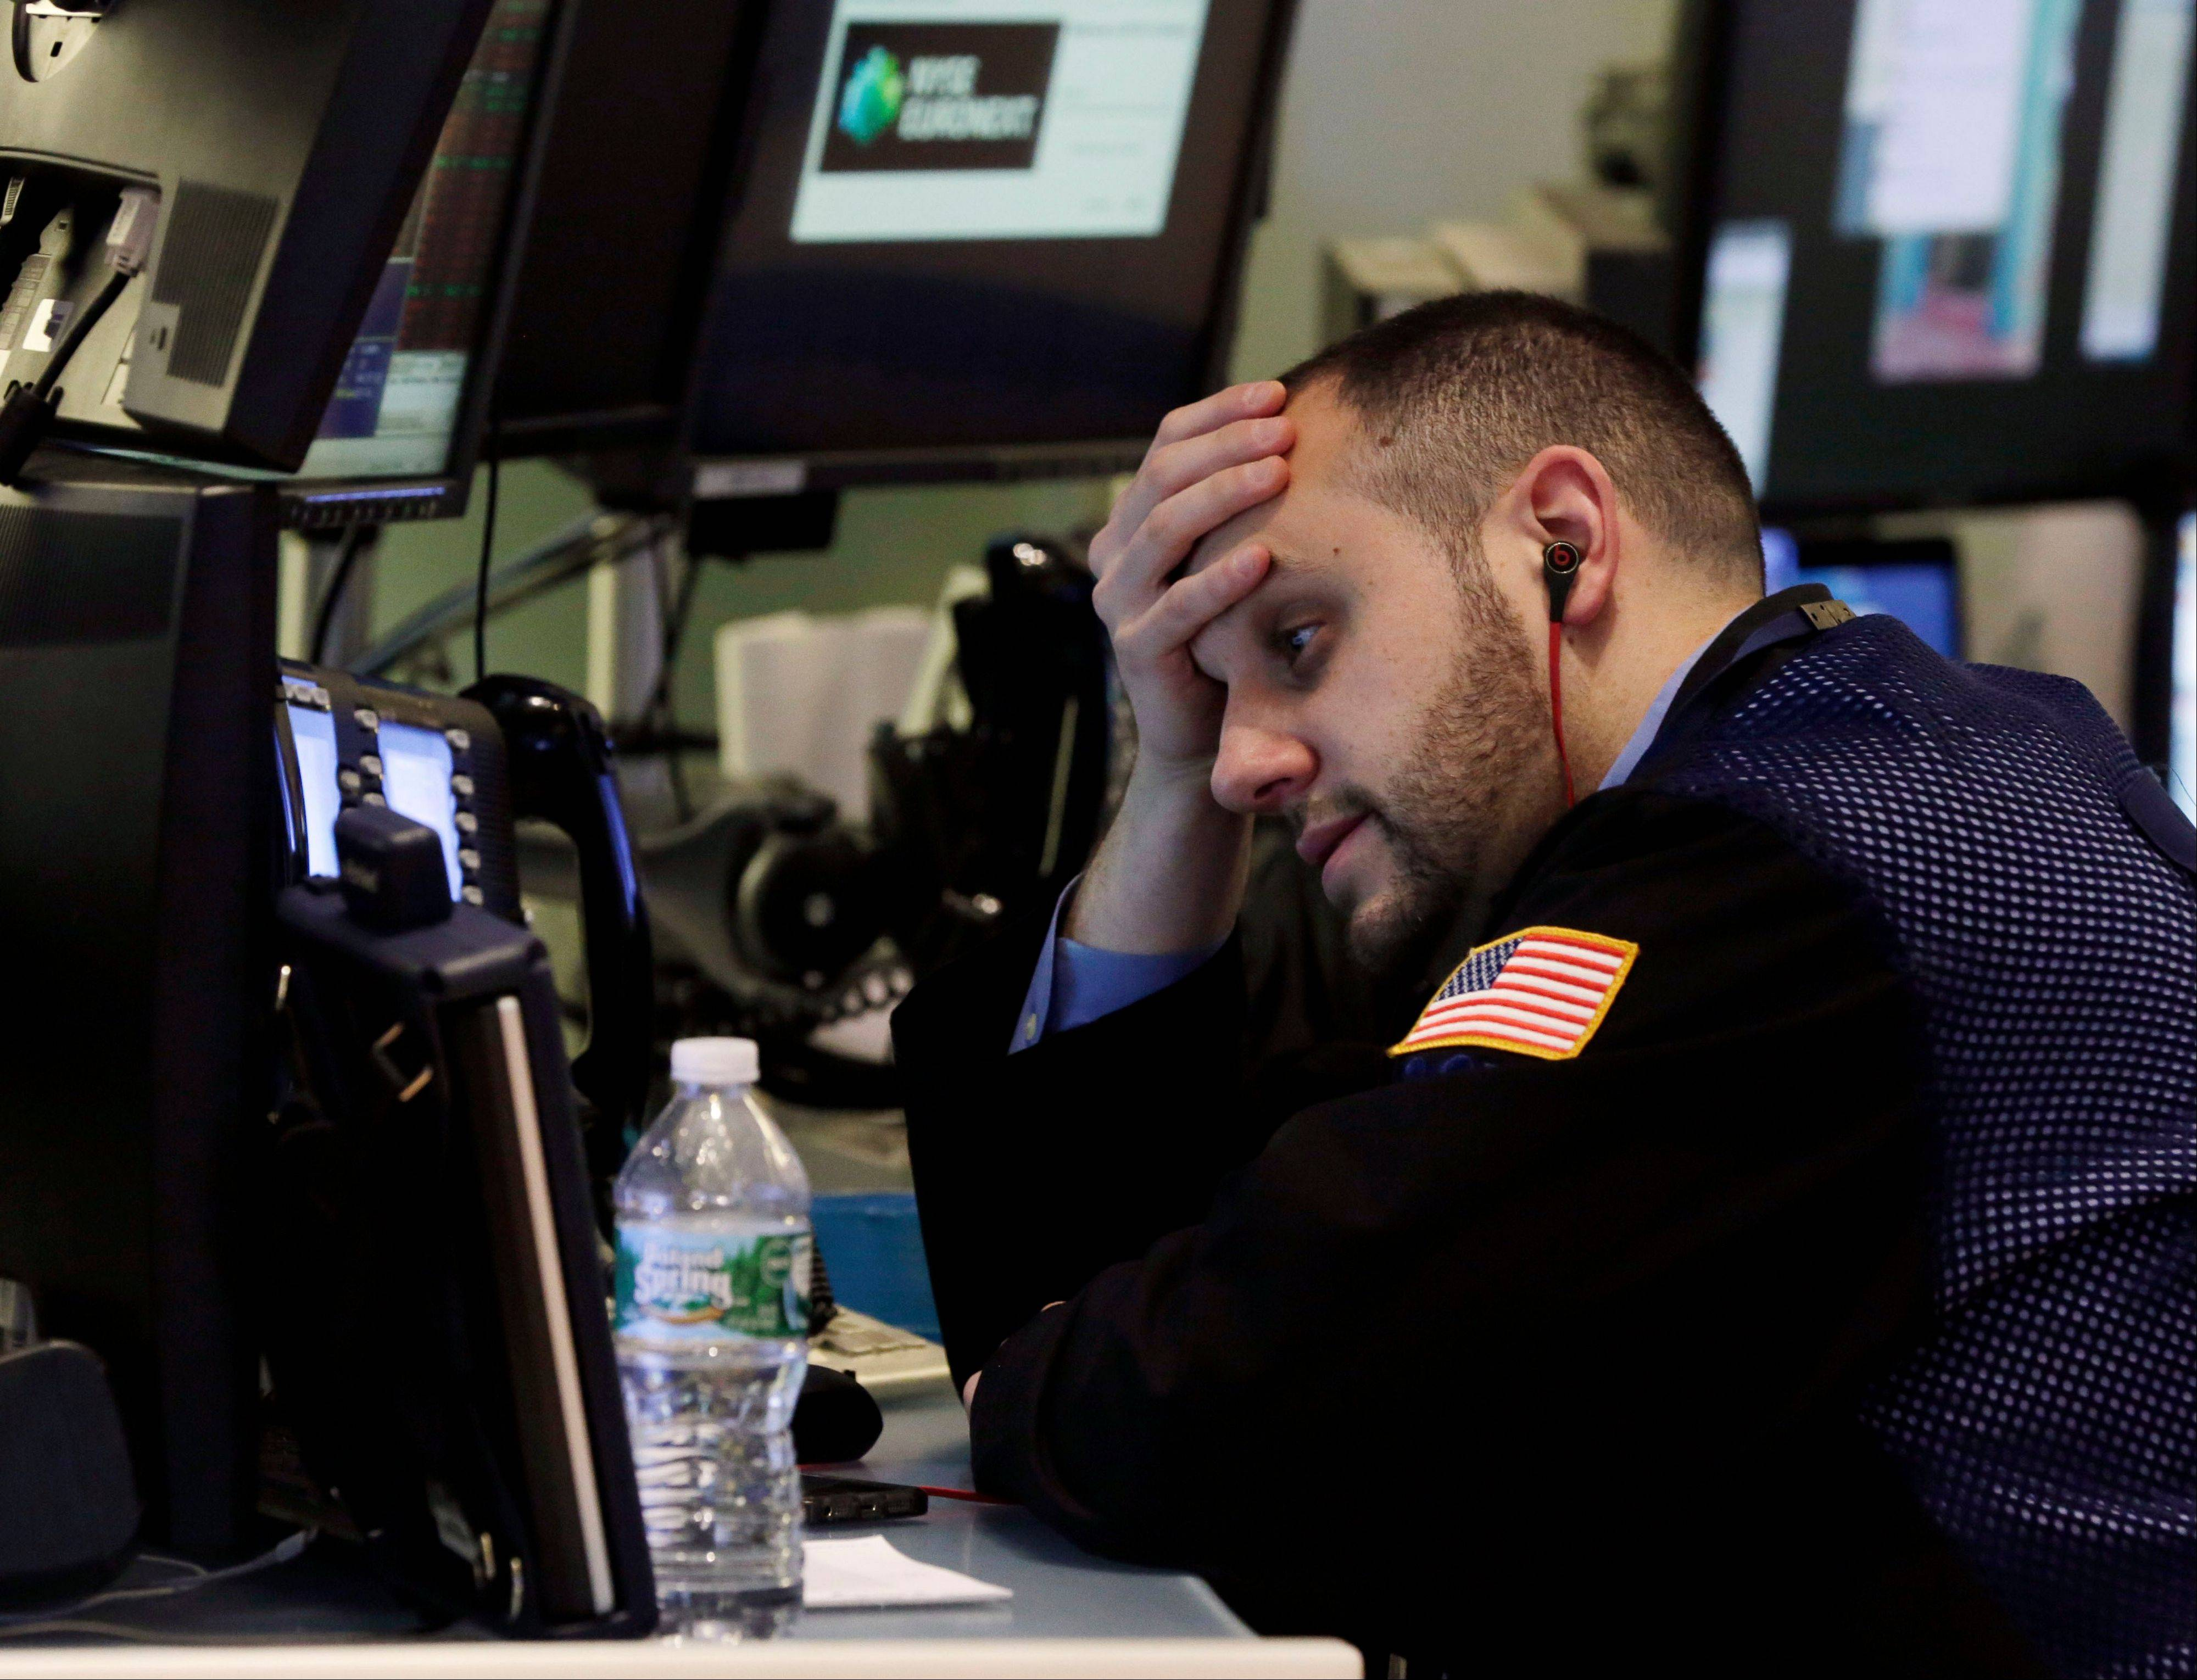 U.S. stocks fell, with the Dow Jones Industrial Average tumbling to a one-month low, after a gauge of China's manufacturing contracted and investors analyzed corporate earnings.